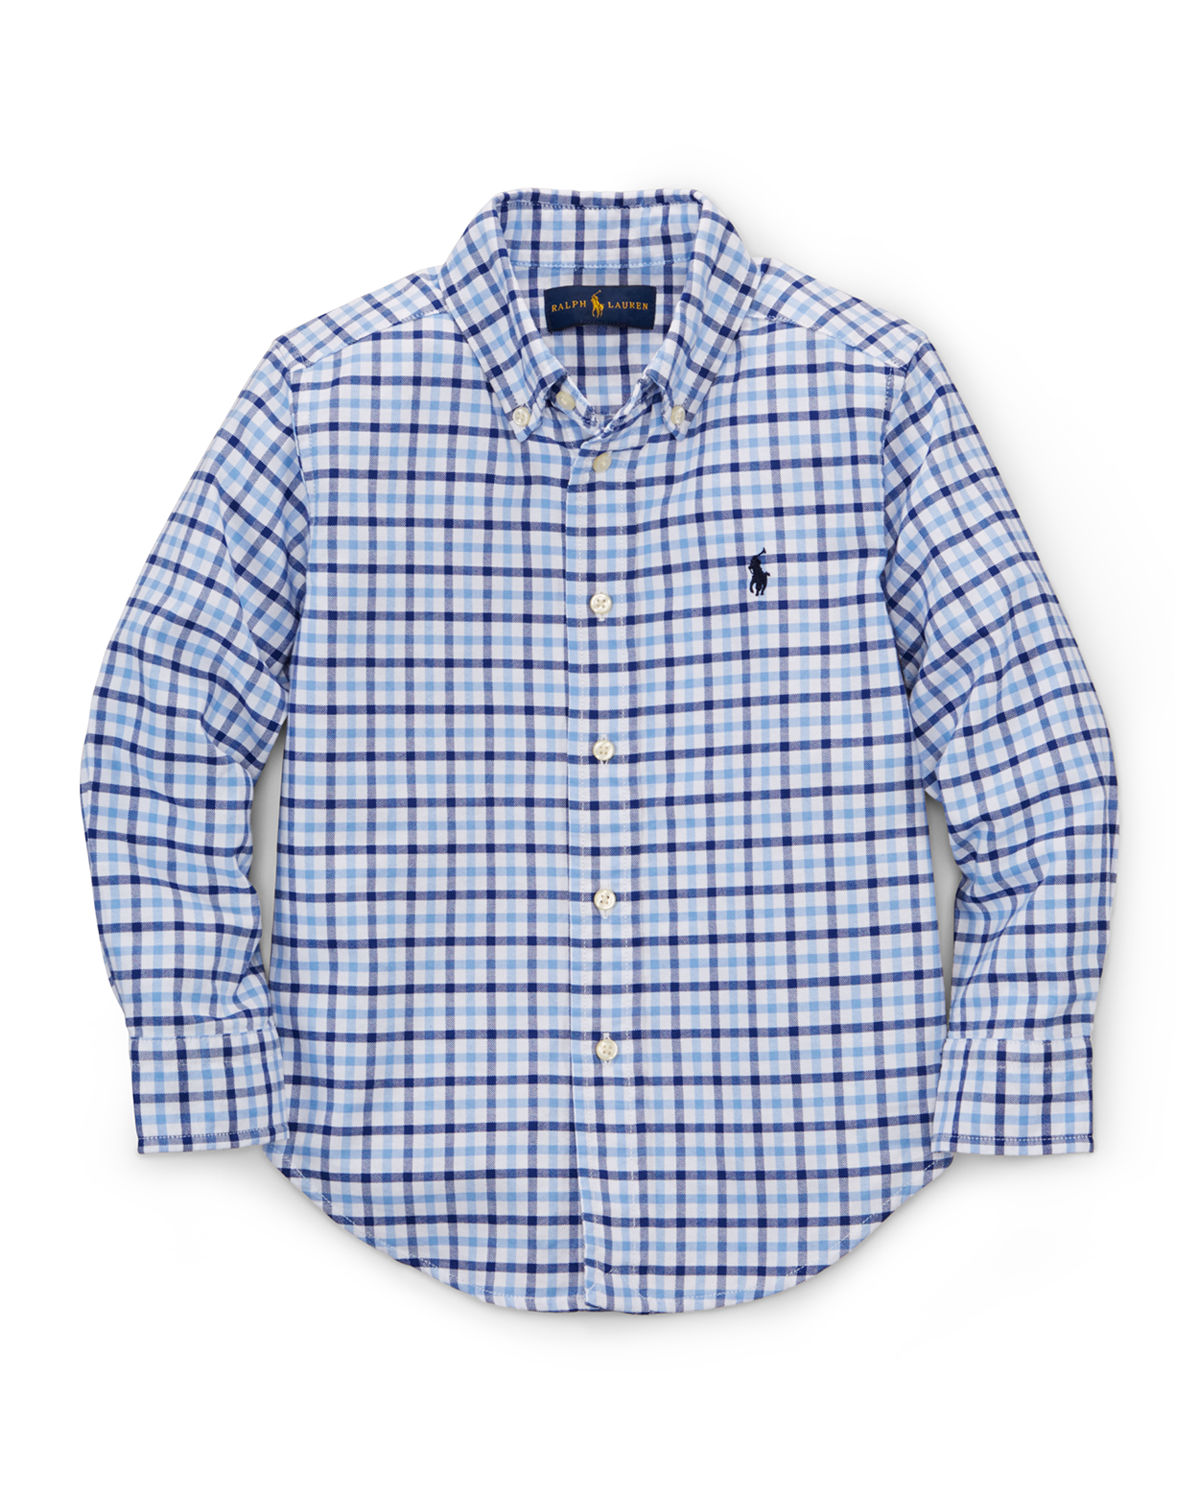 Blake Gingham Oxford Shirt, Size 2T-7